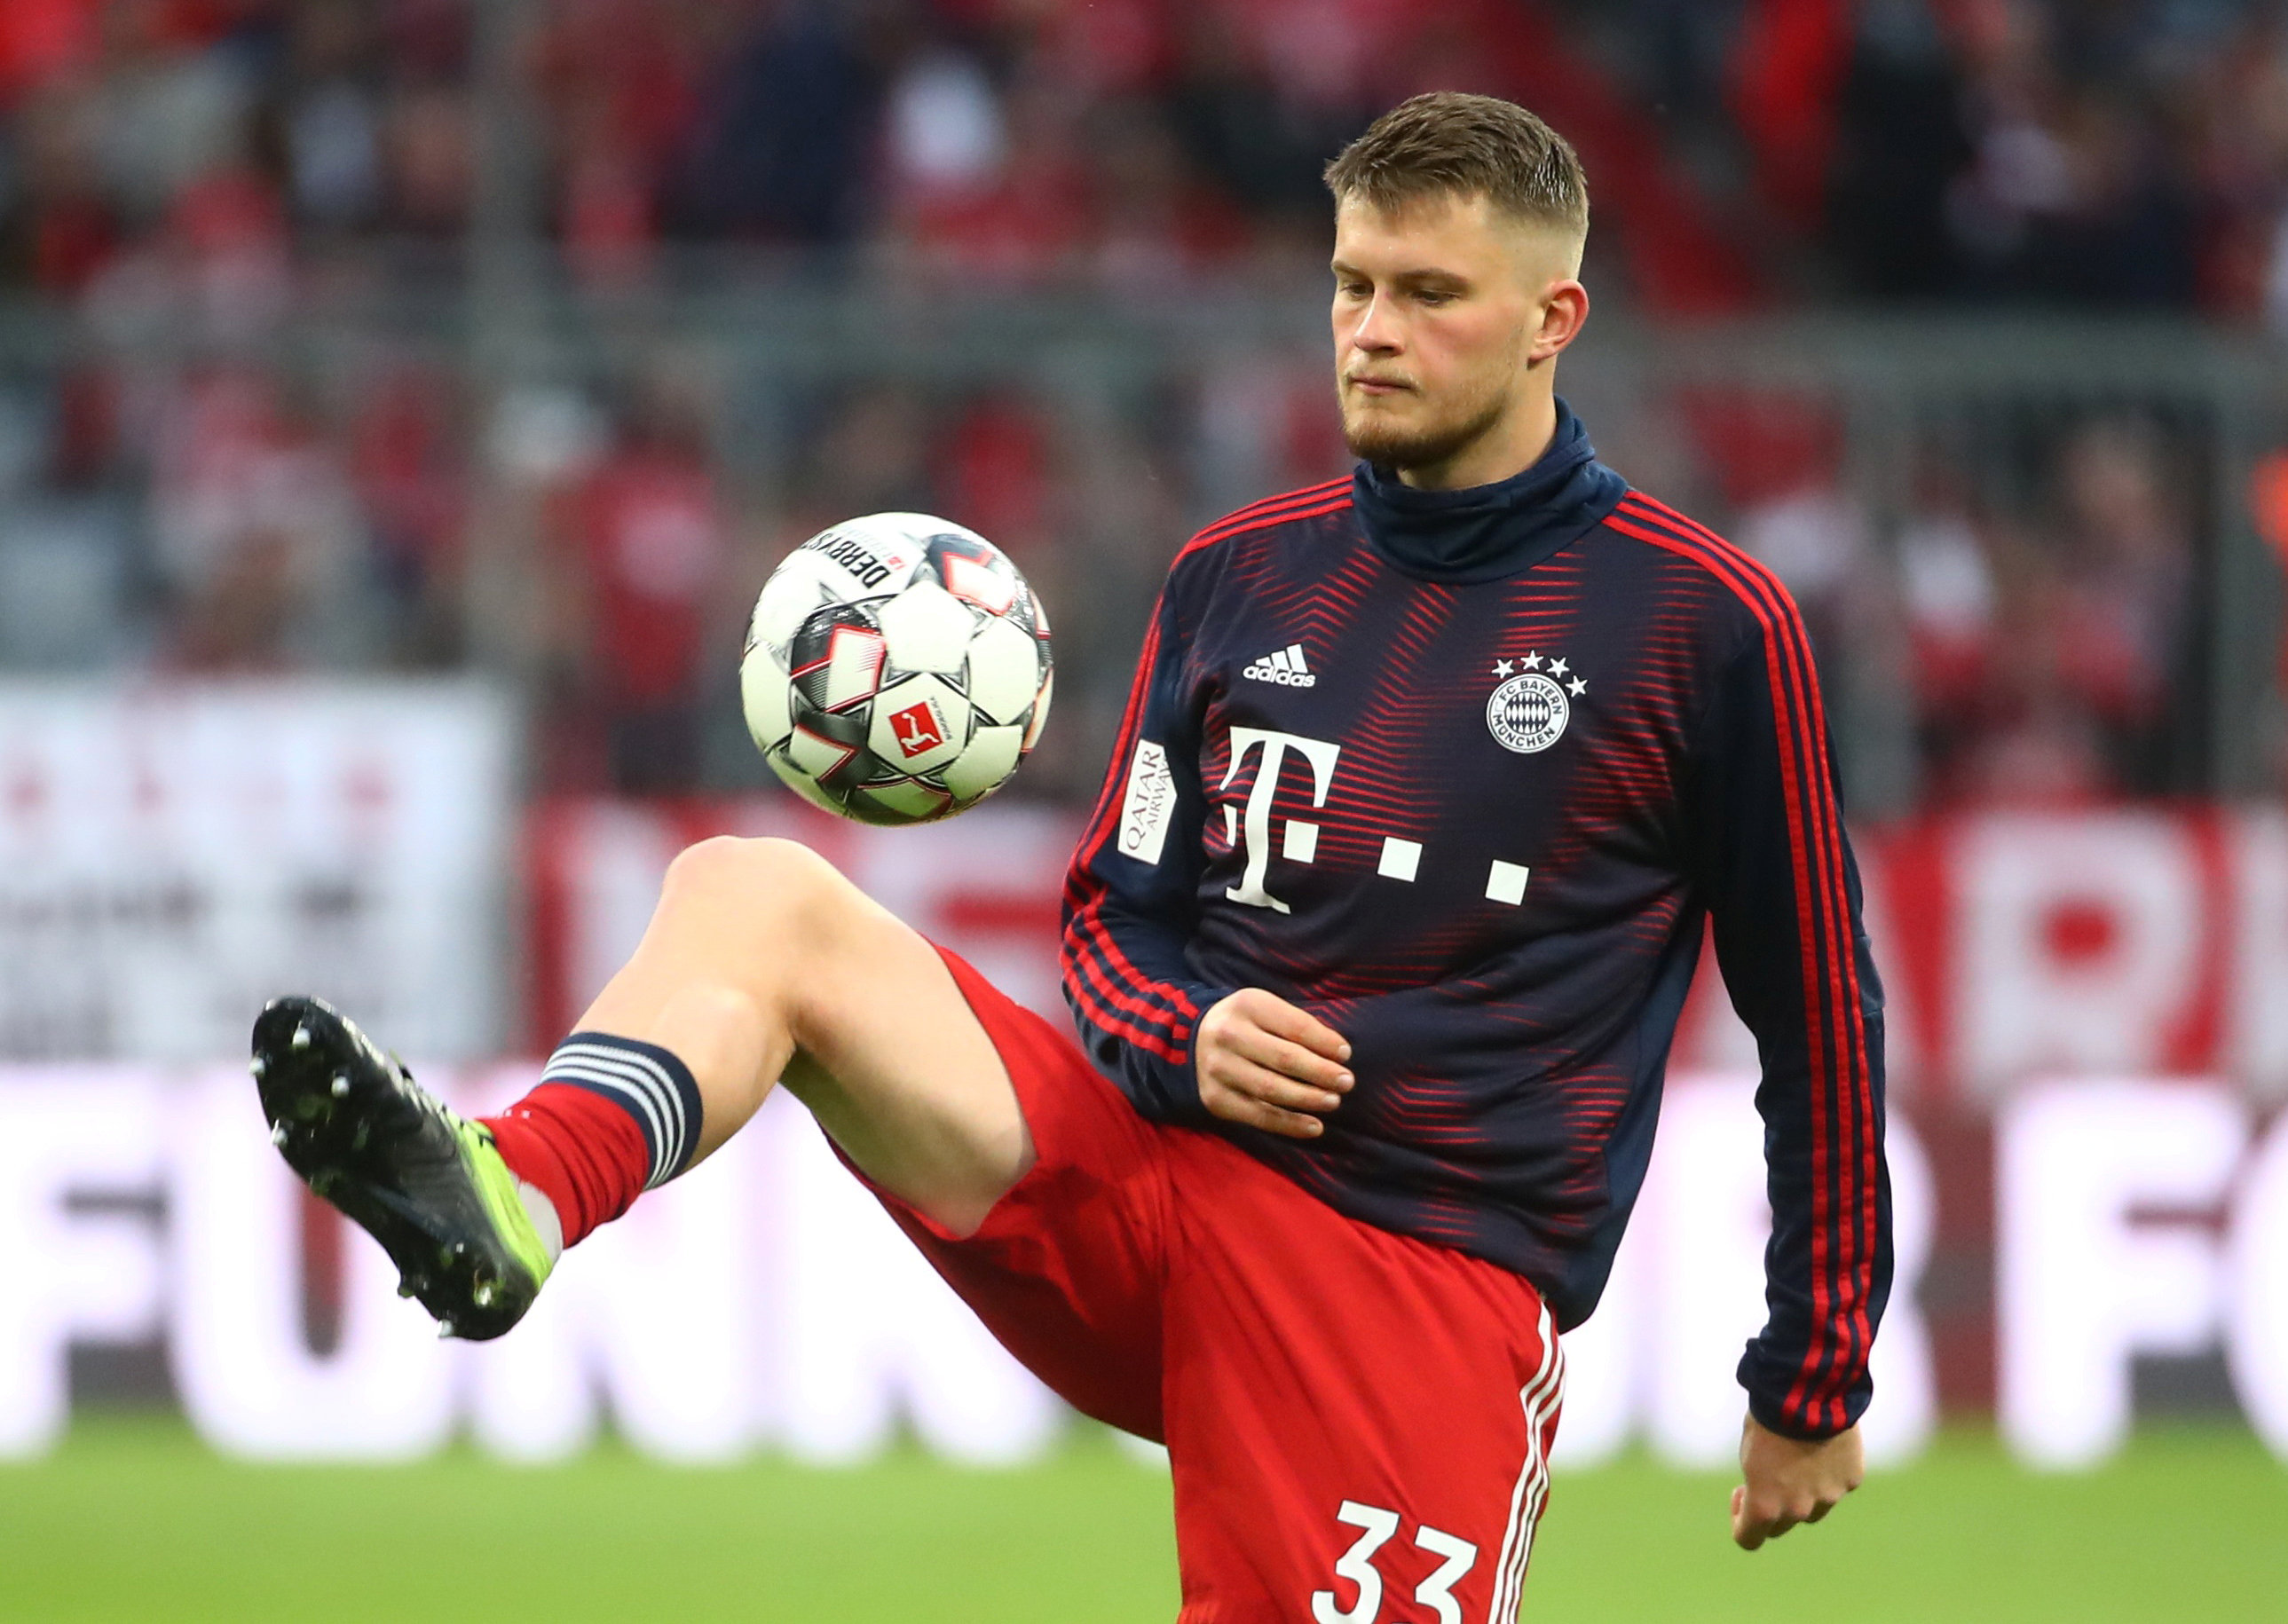 OFFICIAL Highly-rated defender Lars Lukas Mai renews Bayern Munich contract